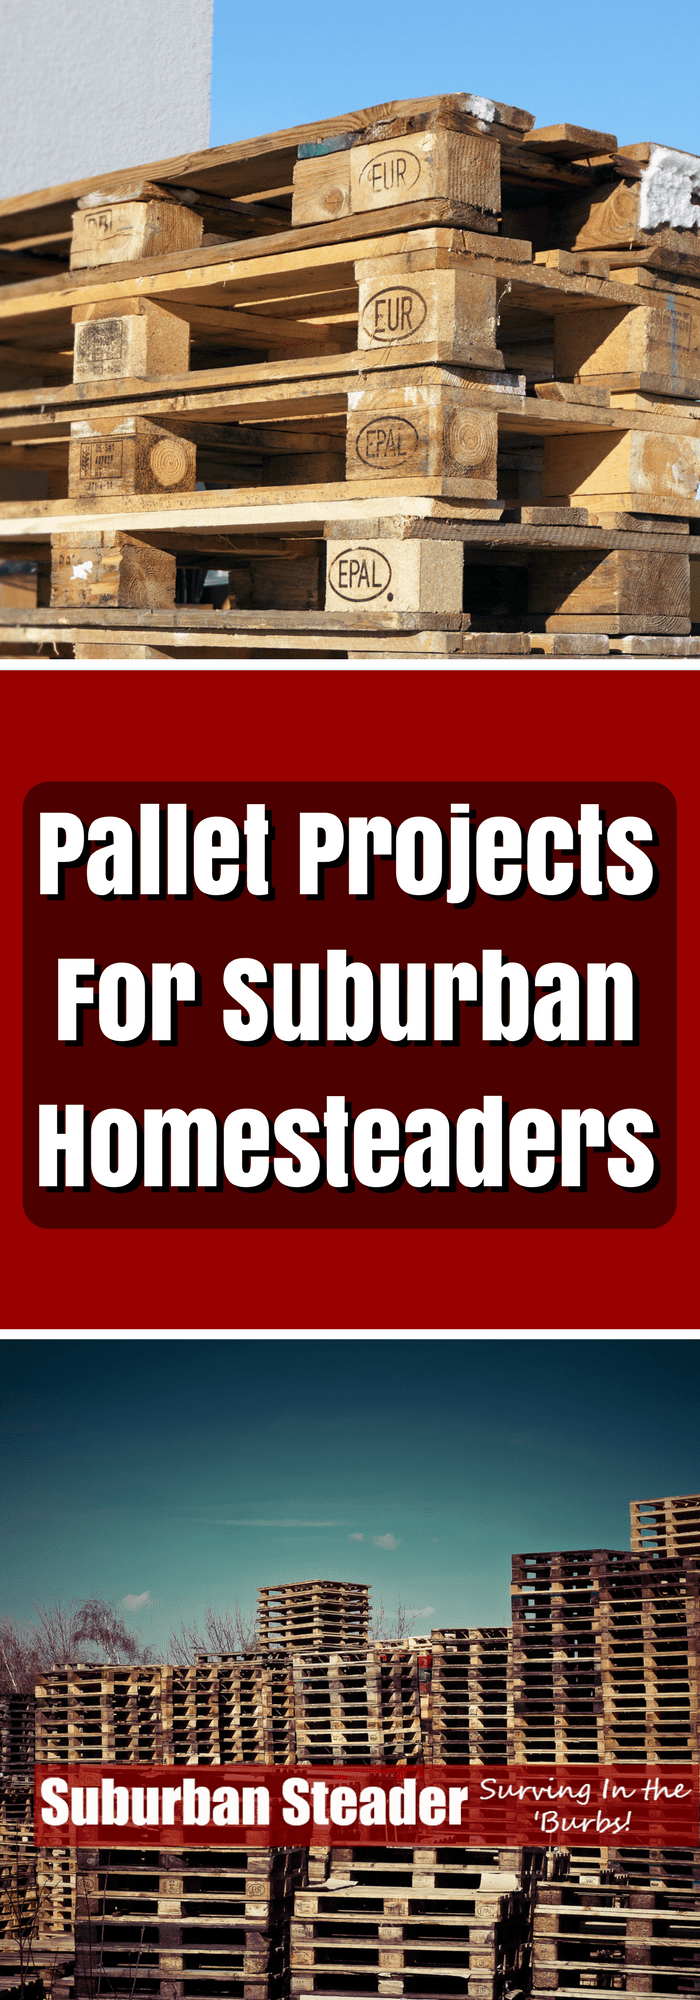 Pallet Projects For Suburban Homesteaders